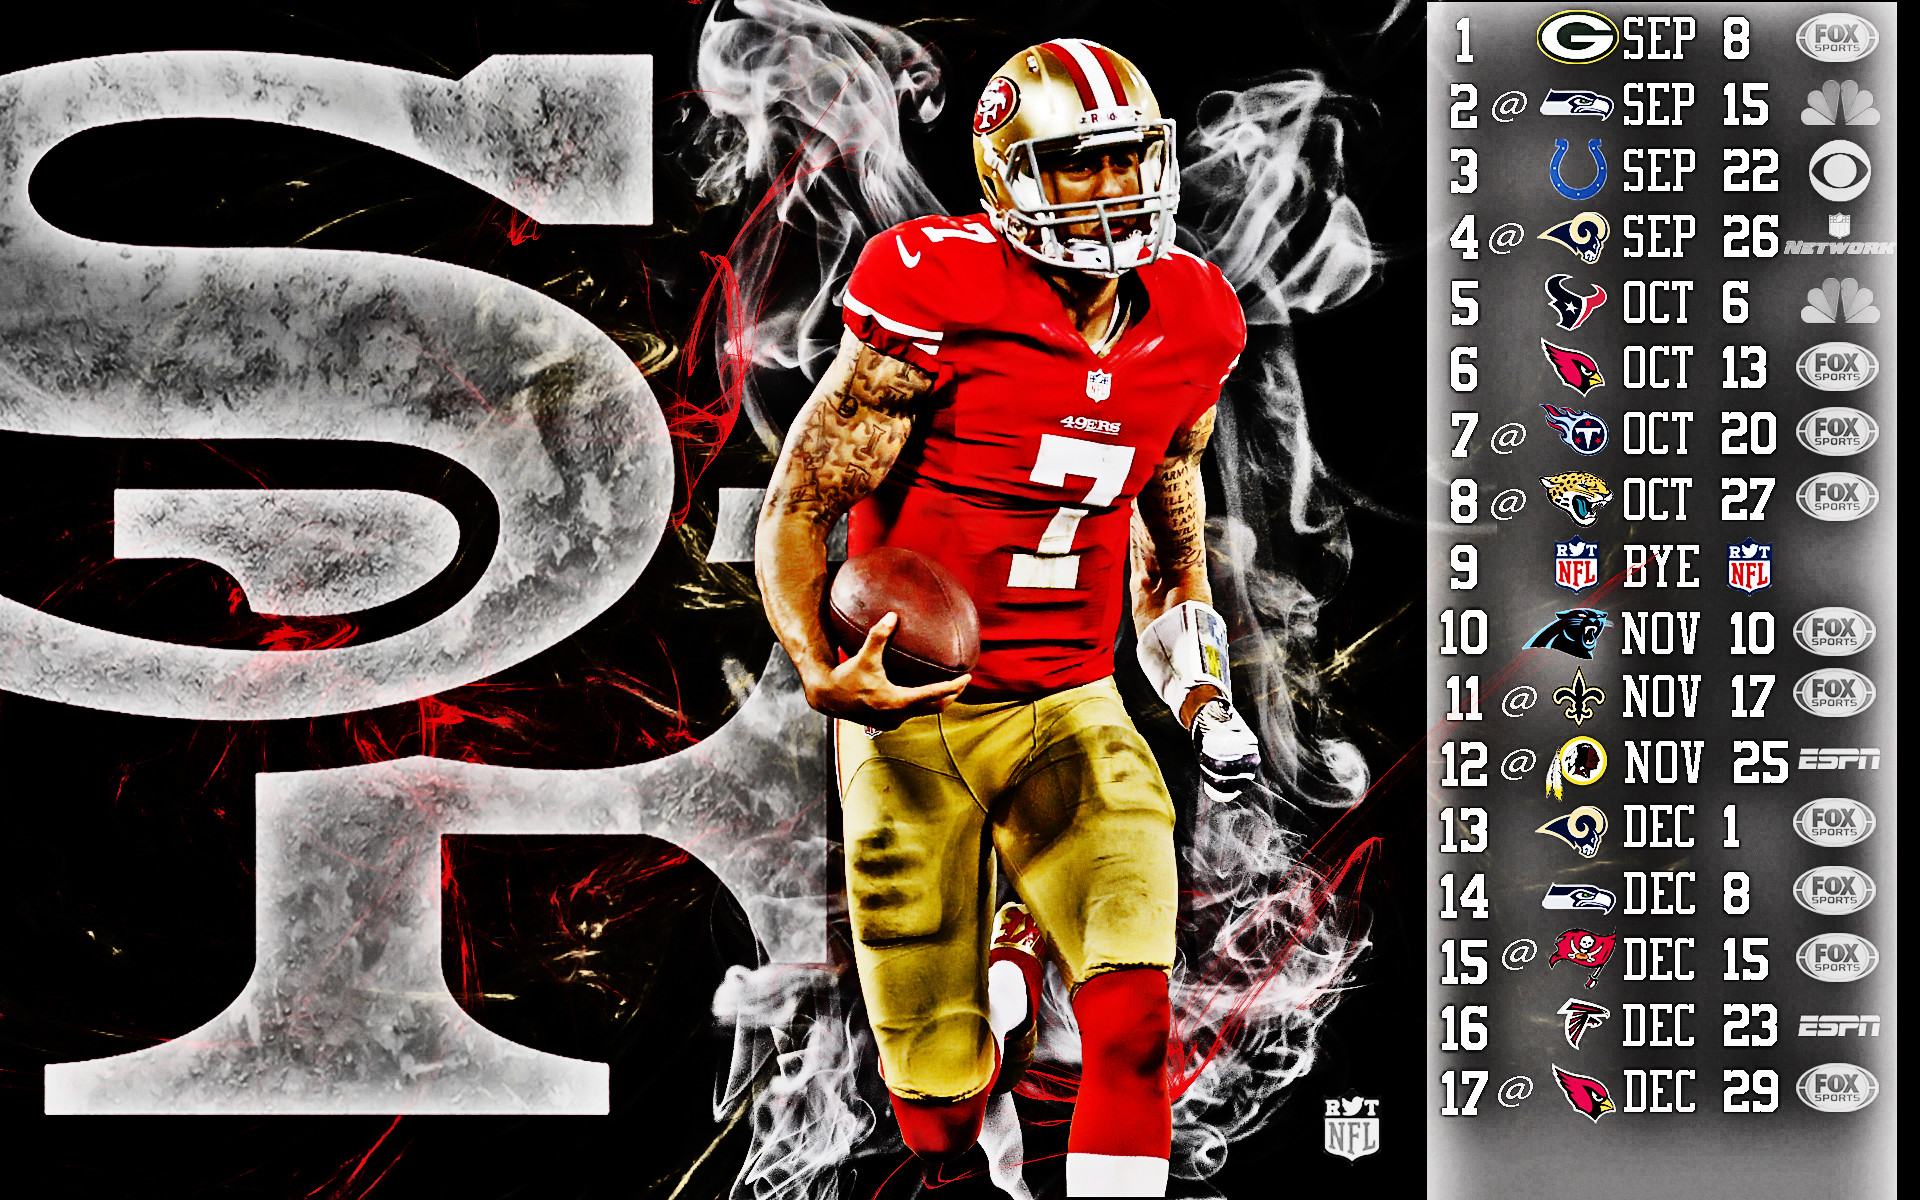 49ers wallpaper for iphone 6 65 images 1920x1200 download san francisco 49ers wallpaper eric heitmann 49ers voltagebd Image collections